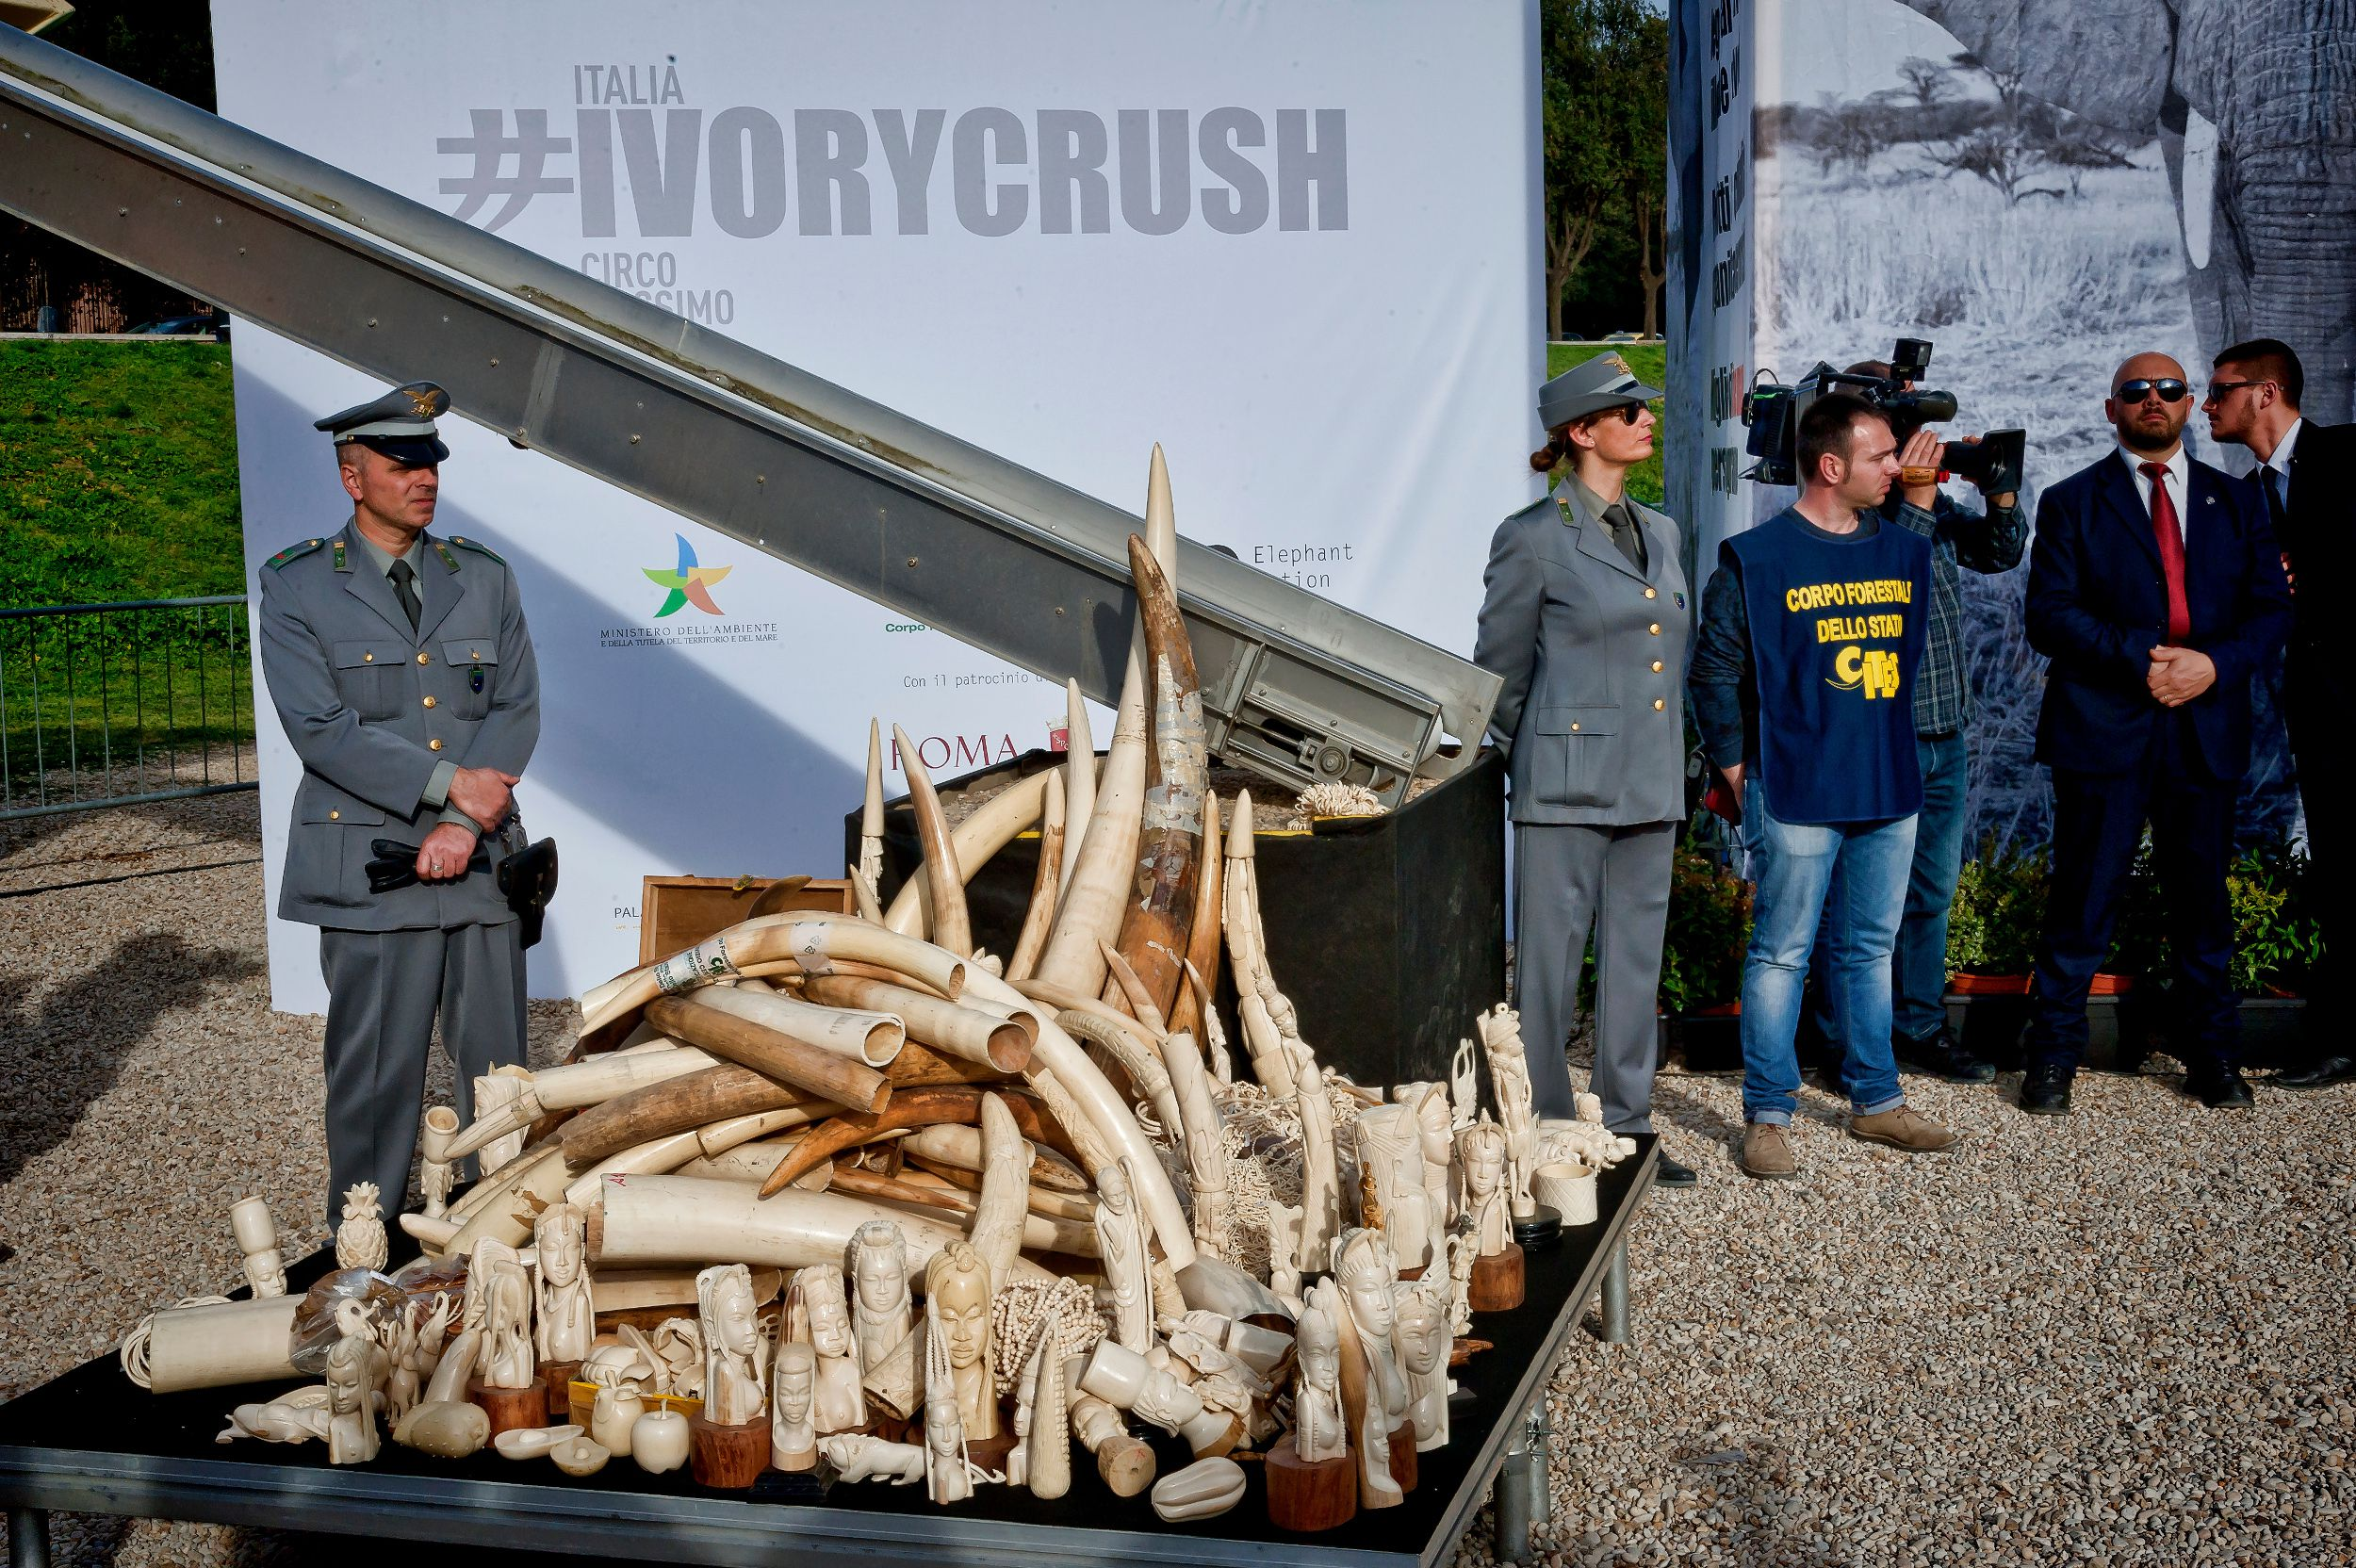 A stack of ivory and ivory sculptures are displayed before the first public ivory crush in Romes ancient Circus Maximus on March 31, 2016 in Rome, Italy.